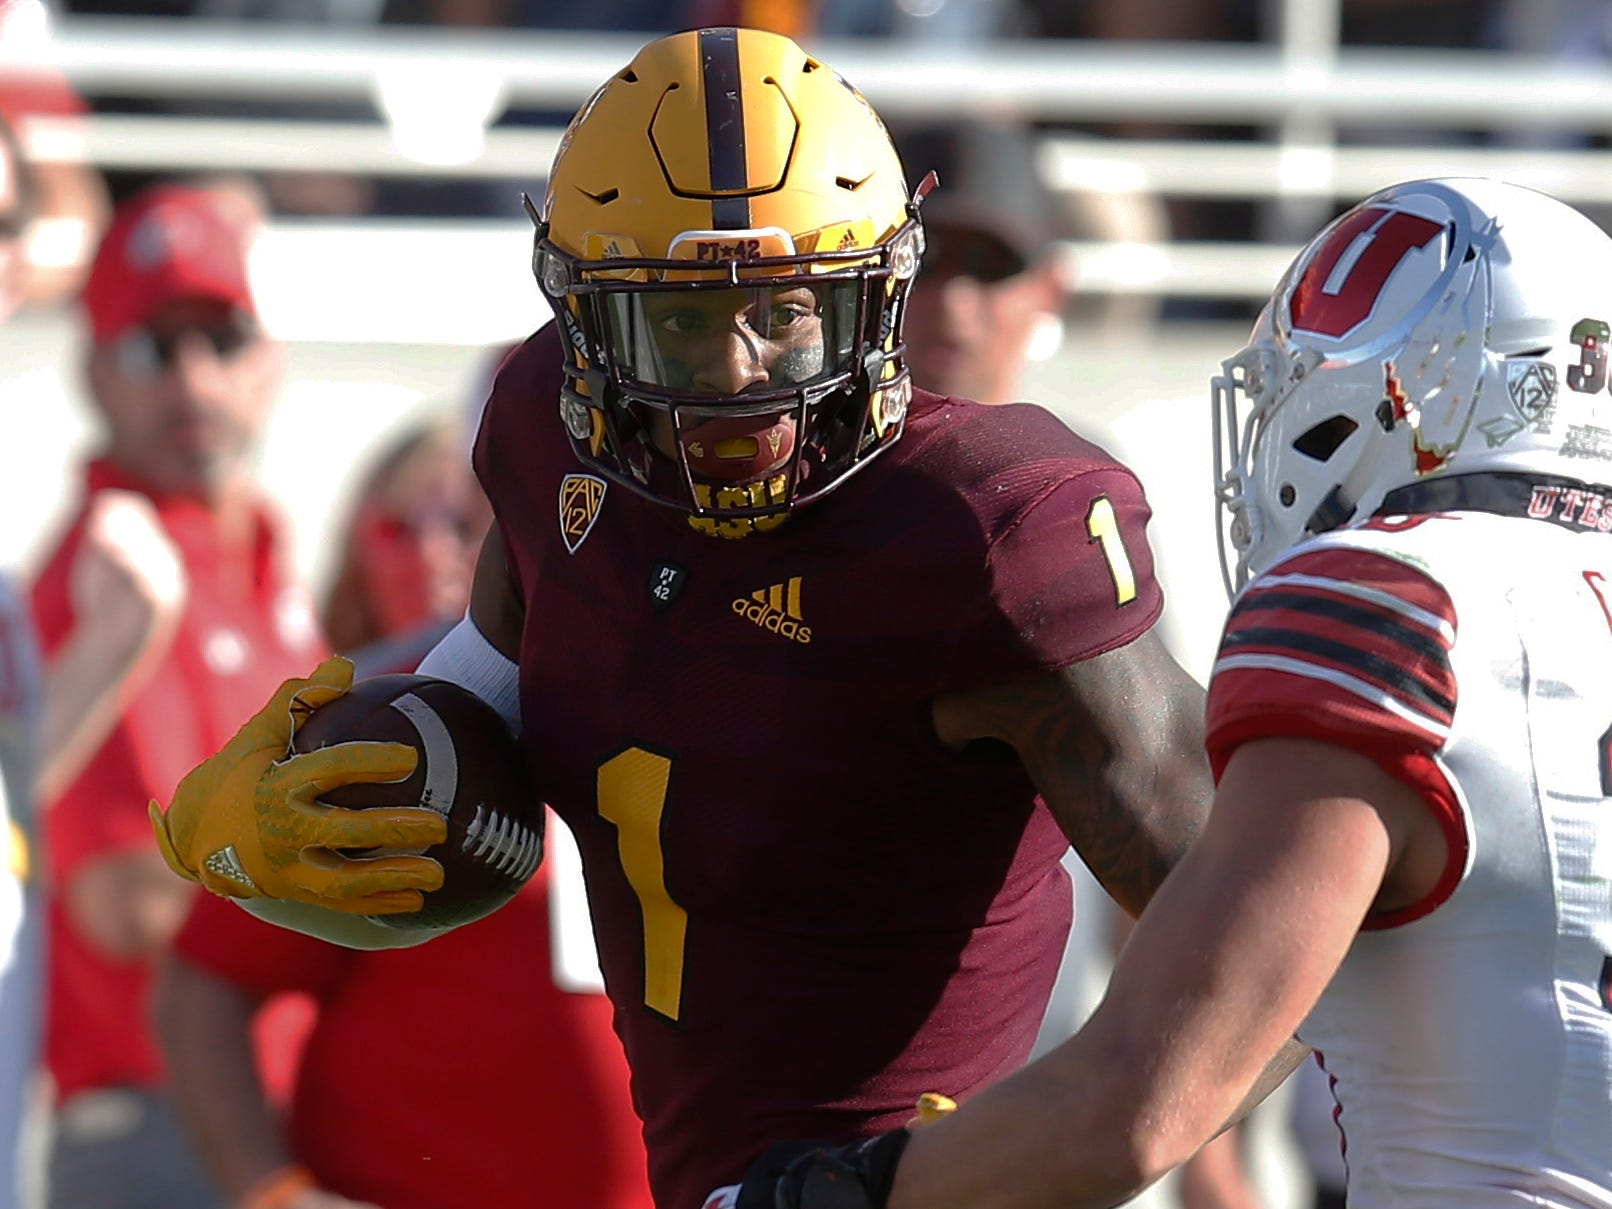 19. N'Keal Harry, WR, Arizona State:  Highly productive, Harry has snagged more than 150 balls over the past two years, topping 1,000 yards and eight touchdowns each of those seasons. He has potential to be a No. 1 receiver as a pro.